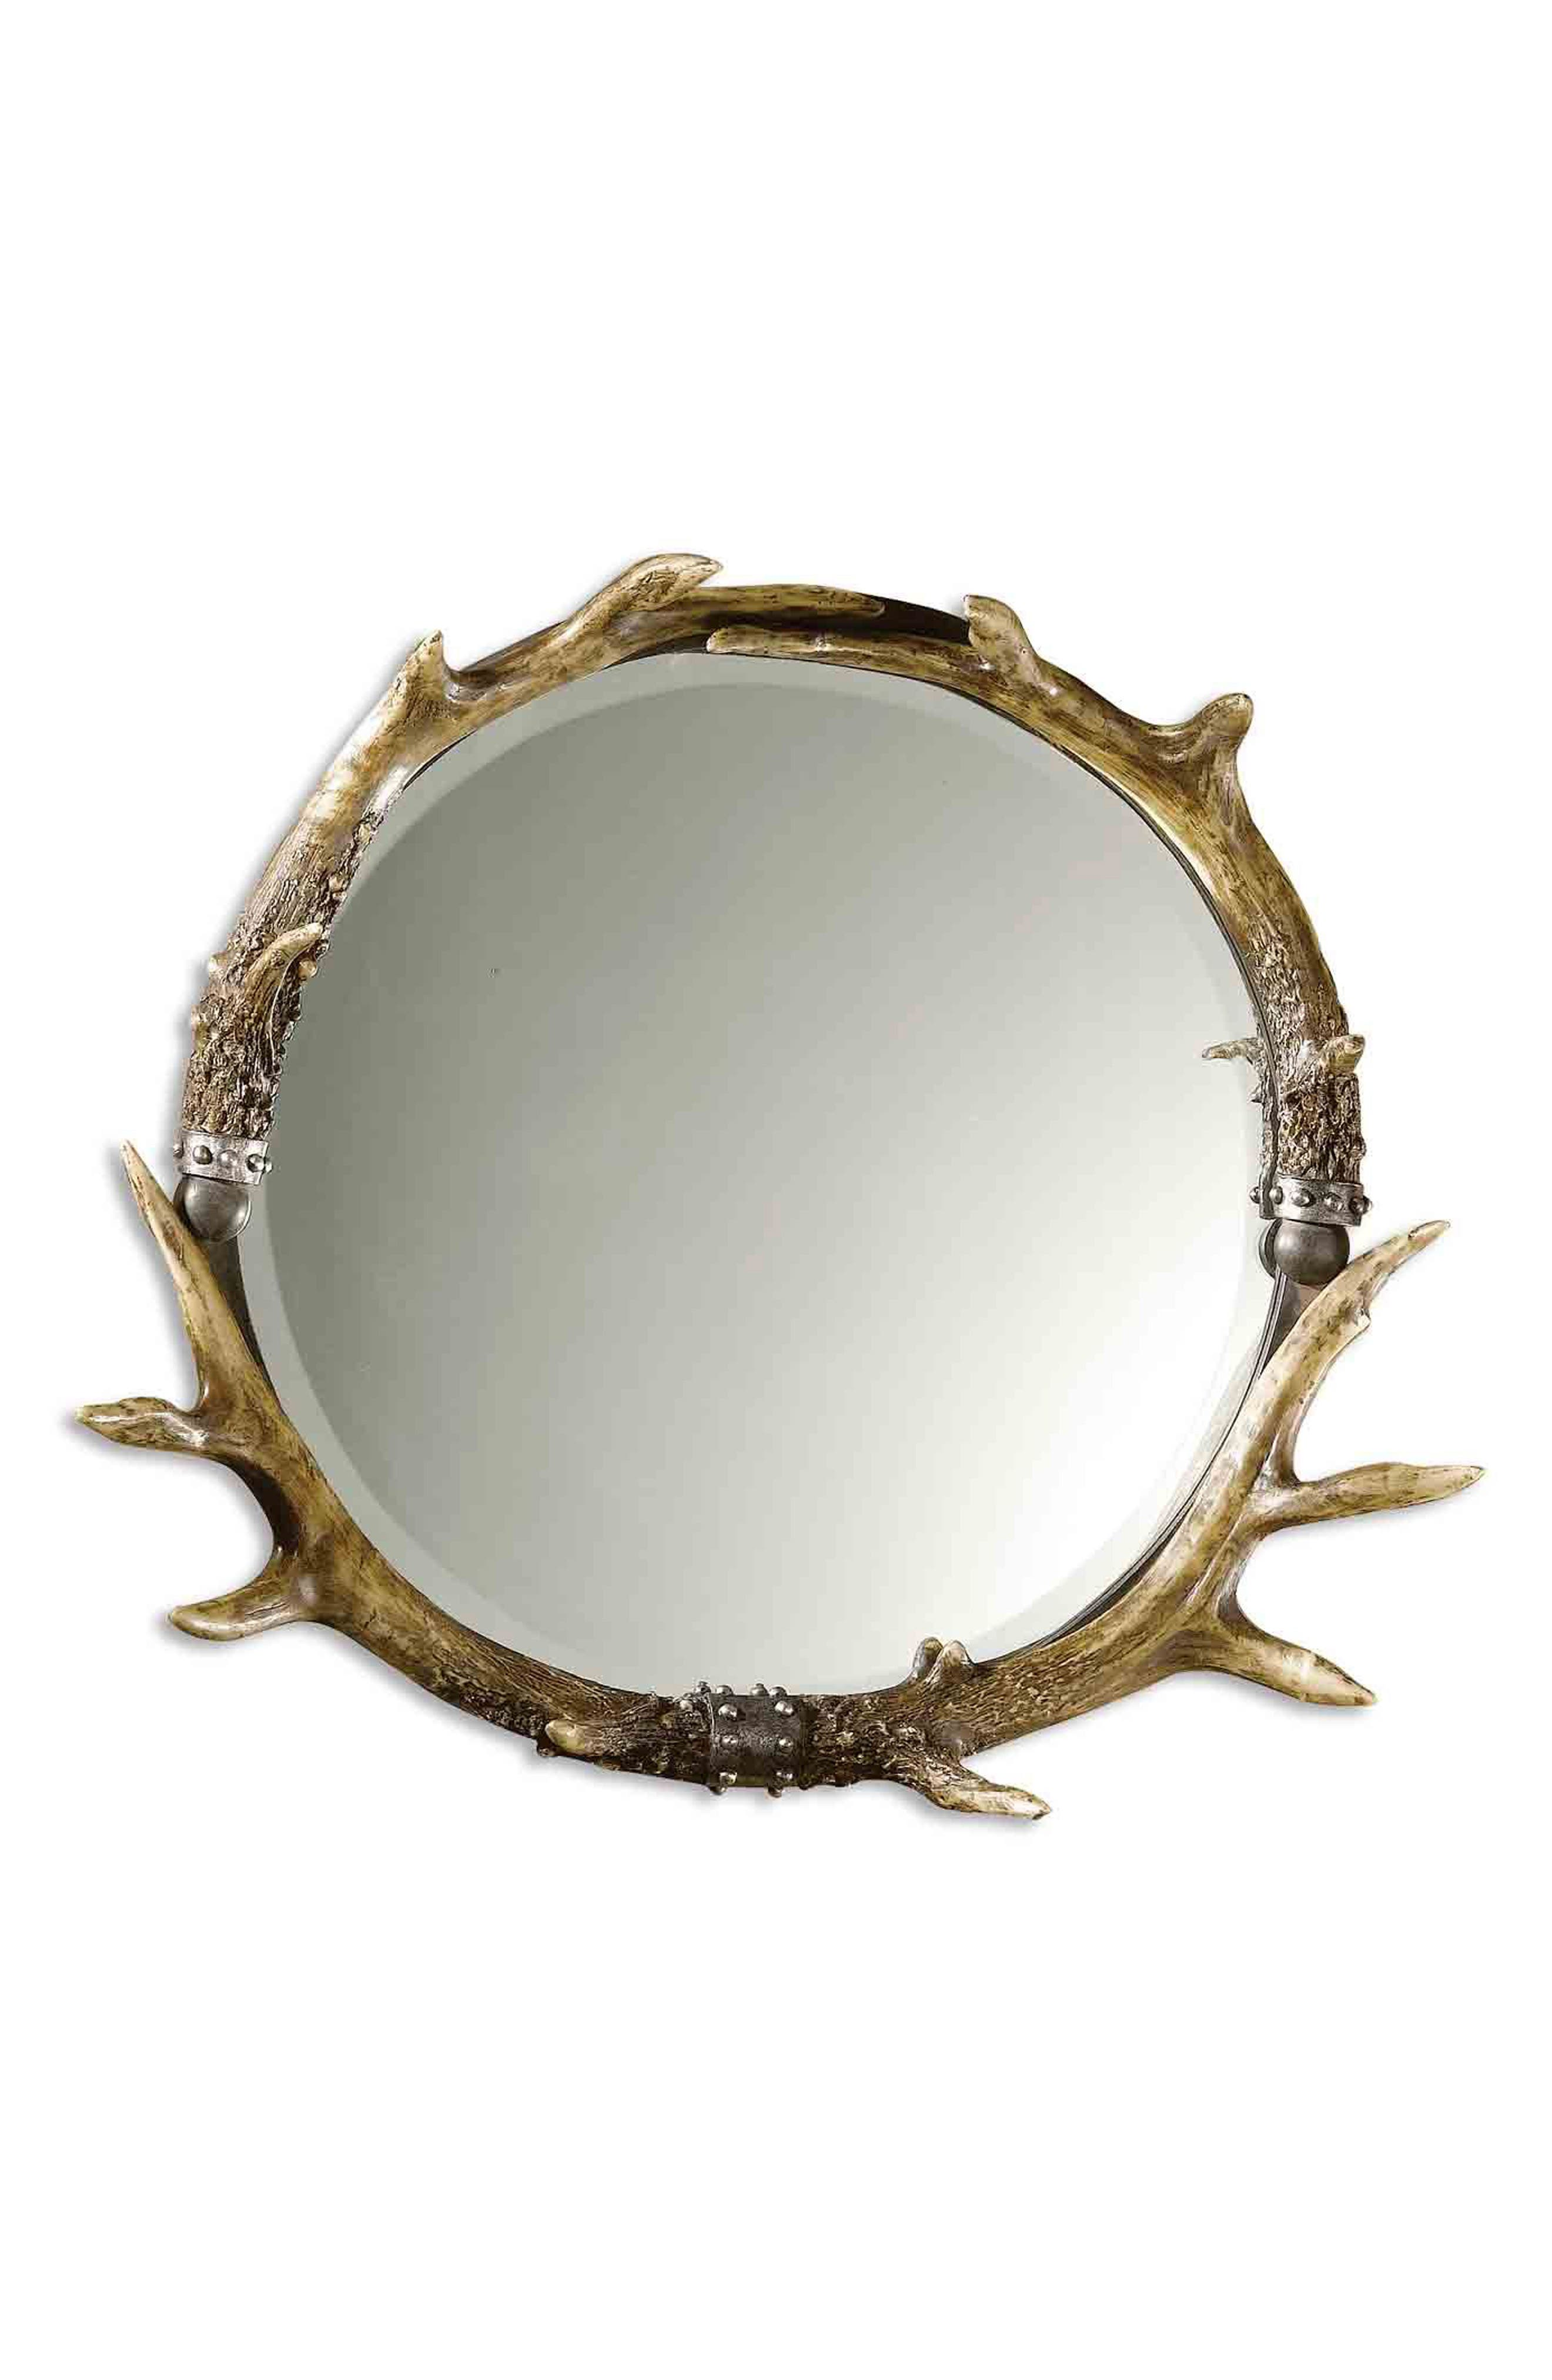 Main Image - Uttermost Stag Horn Wall Mirror